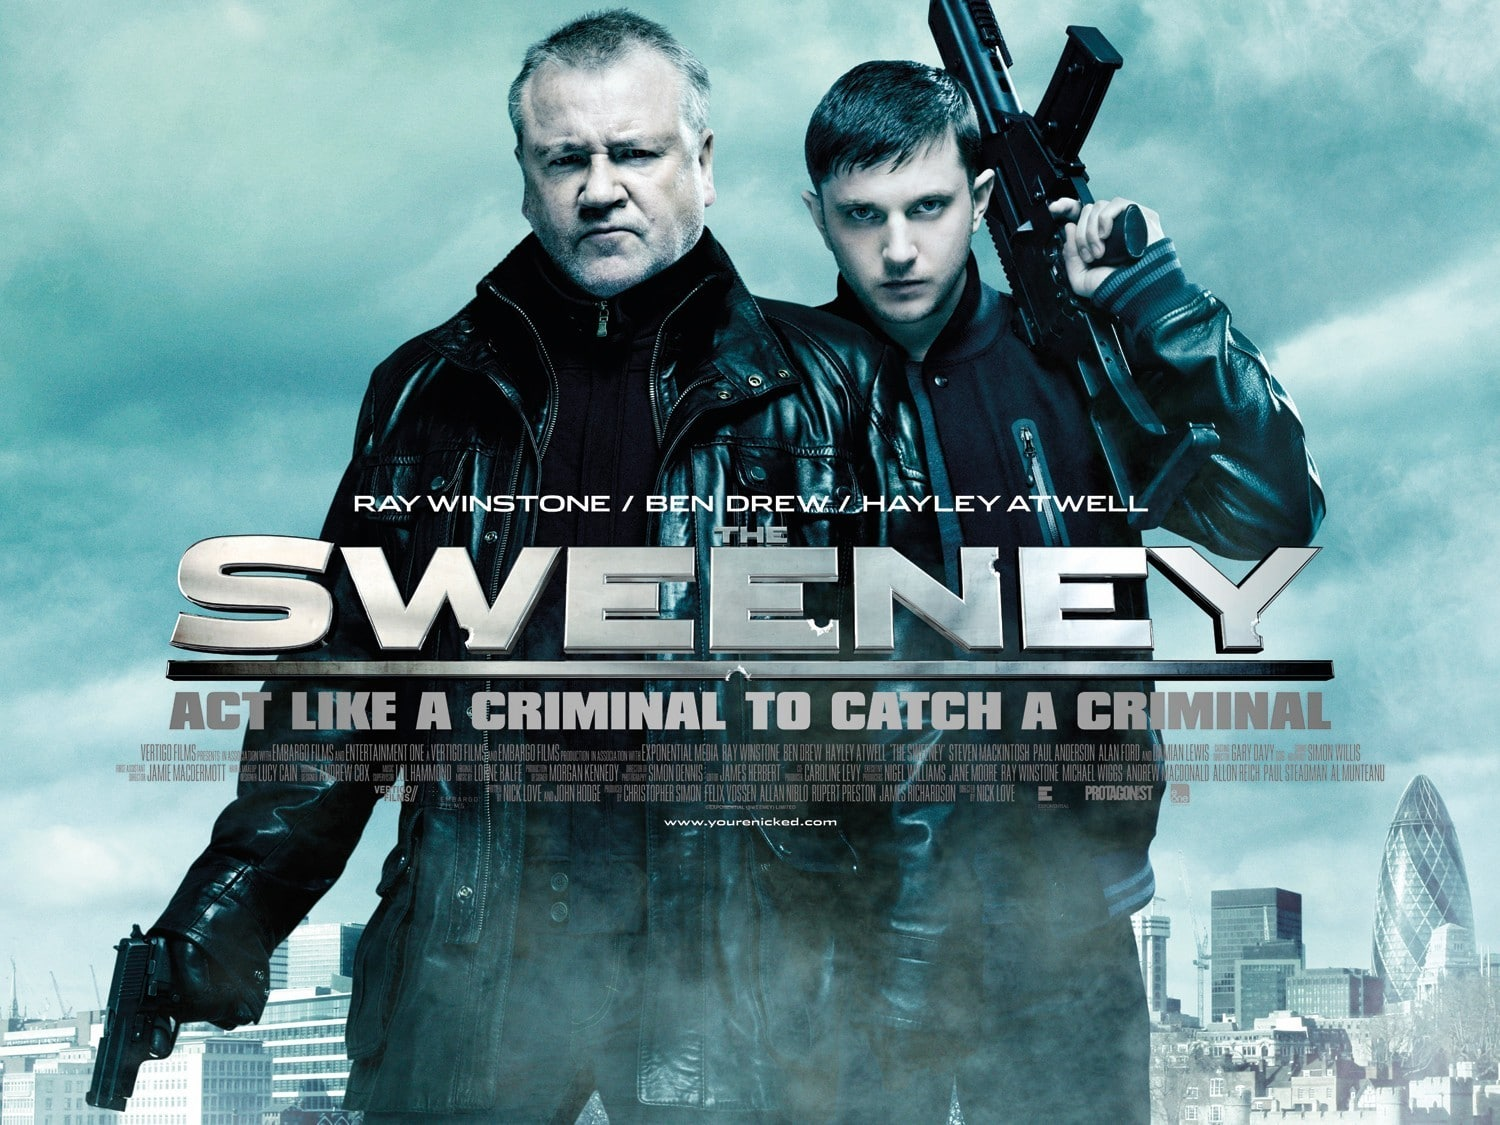 The Sweeney + The Crime + Film Movie Poster